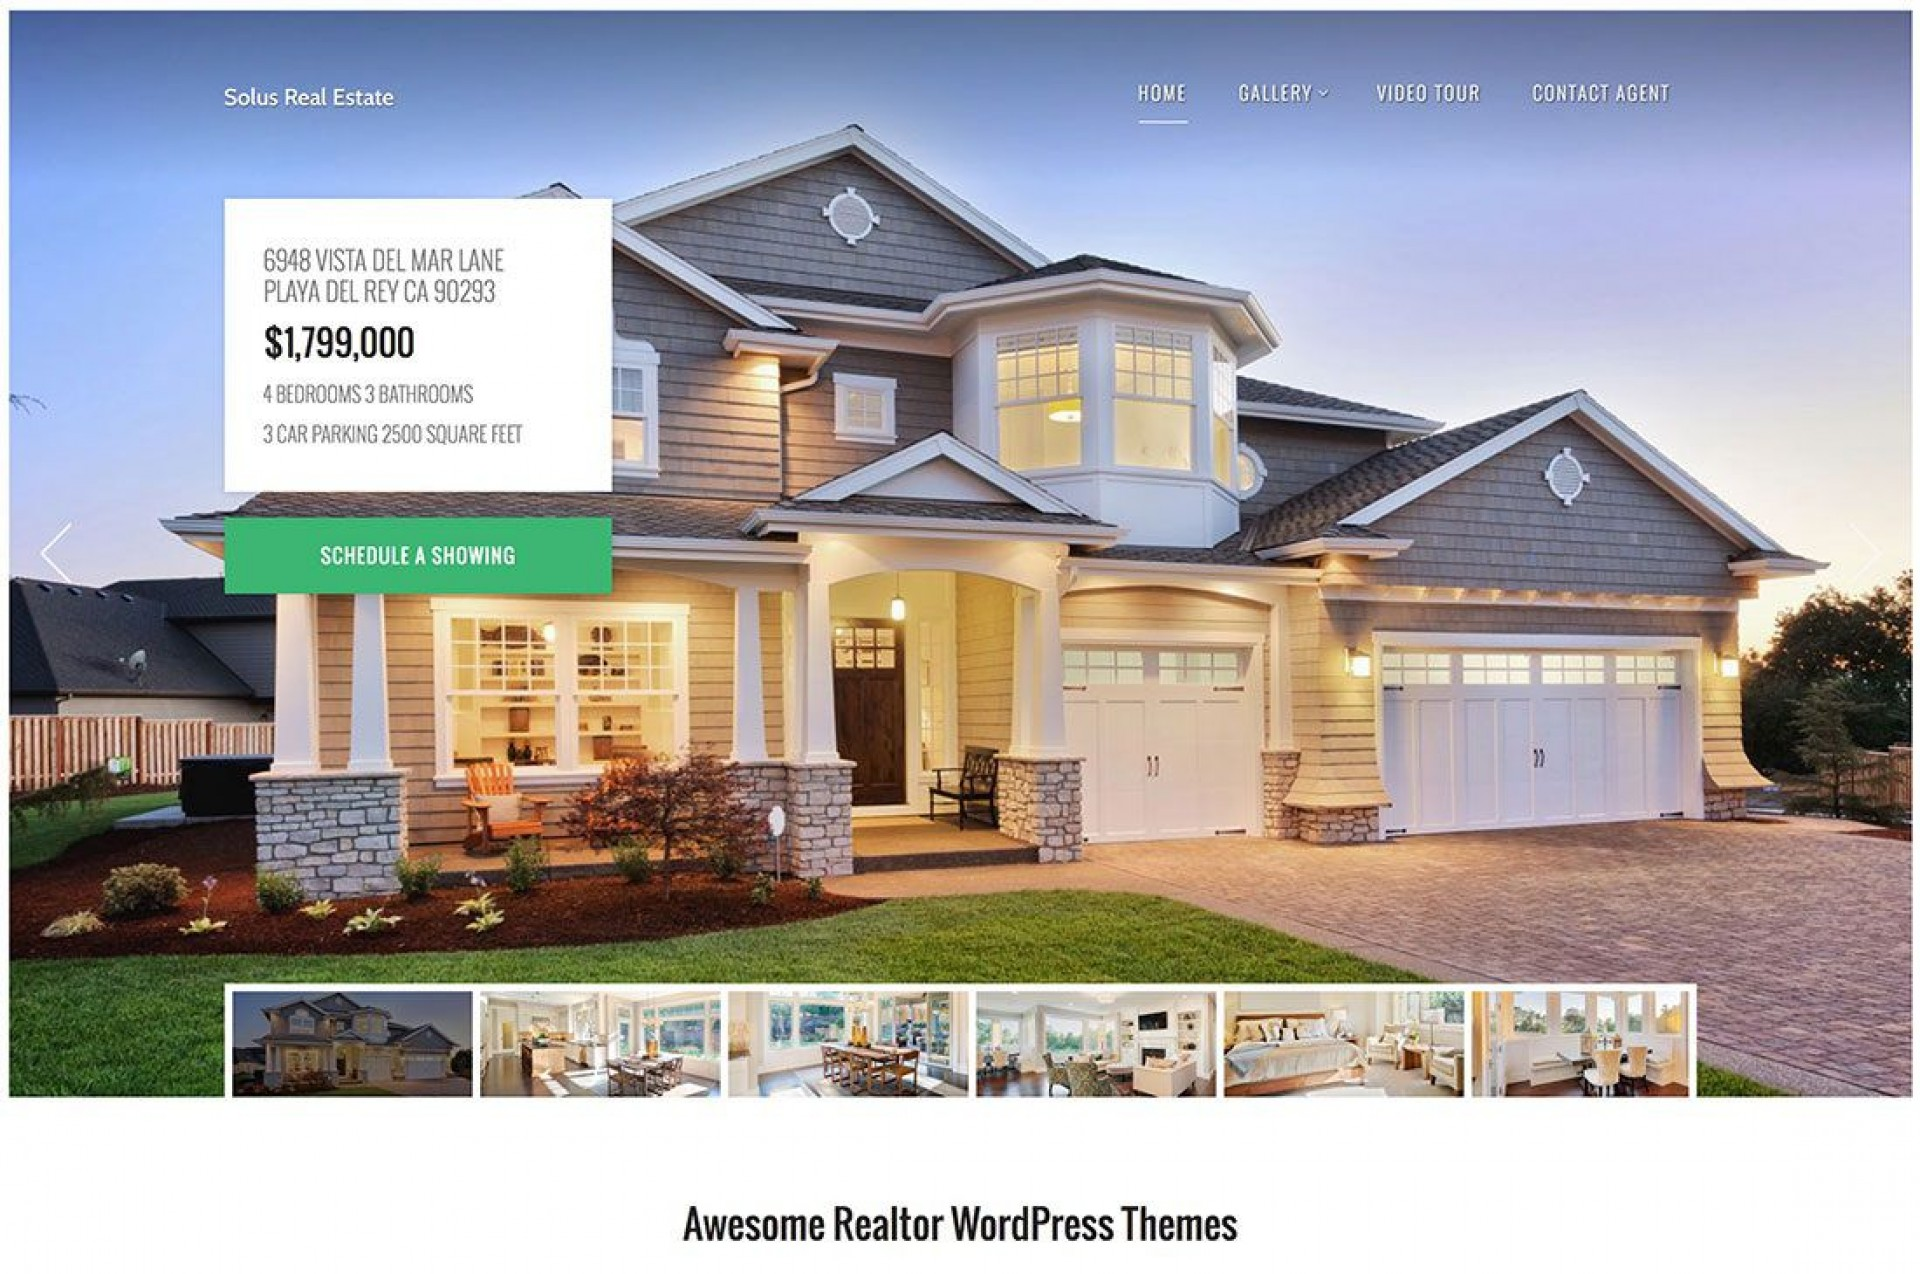 007 Imposing Real Estate Template Wordpres Inspiration  Homepres - Theme Free Download Realtyspace1920